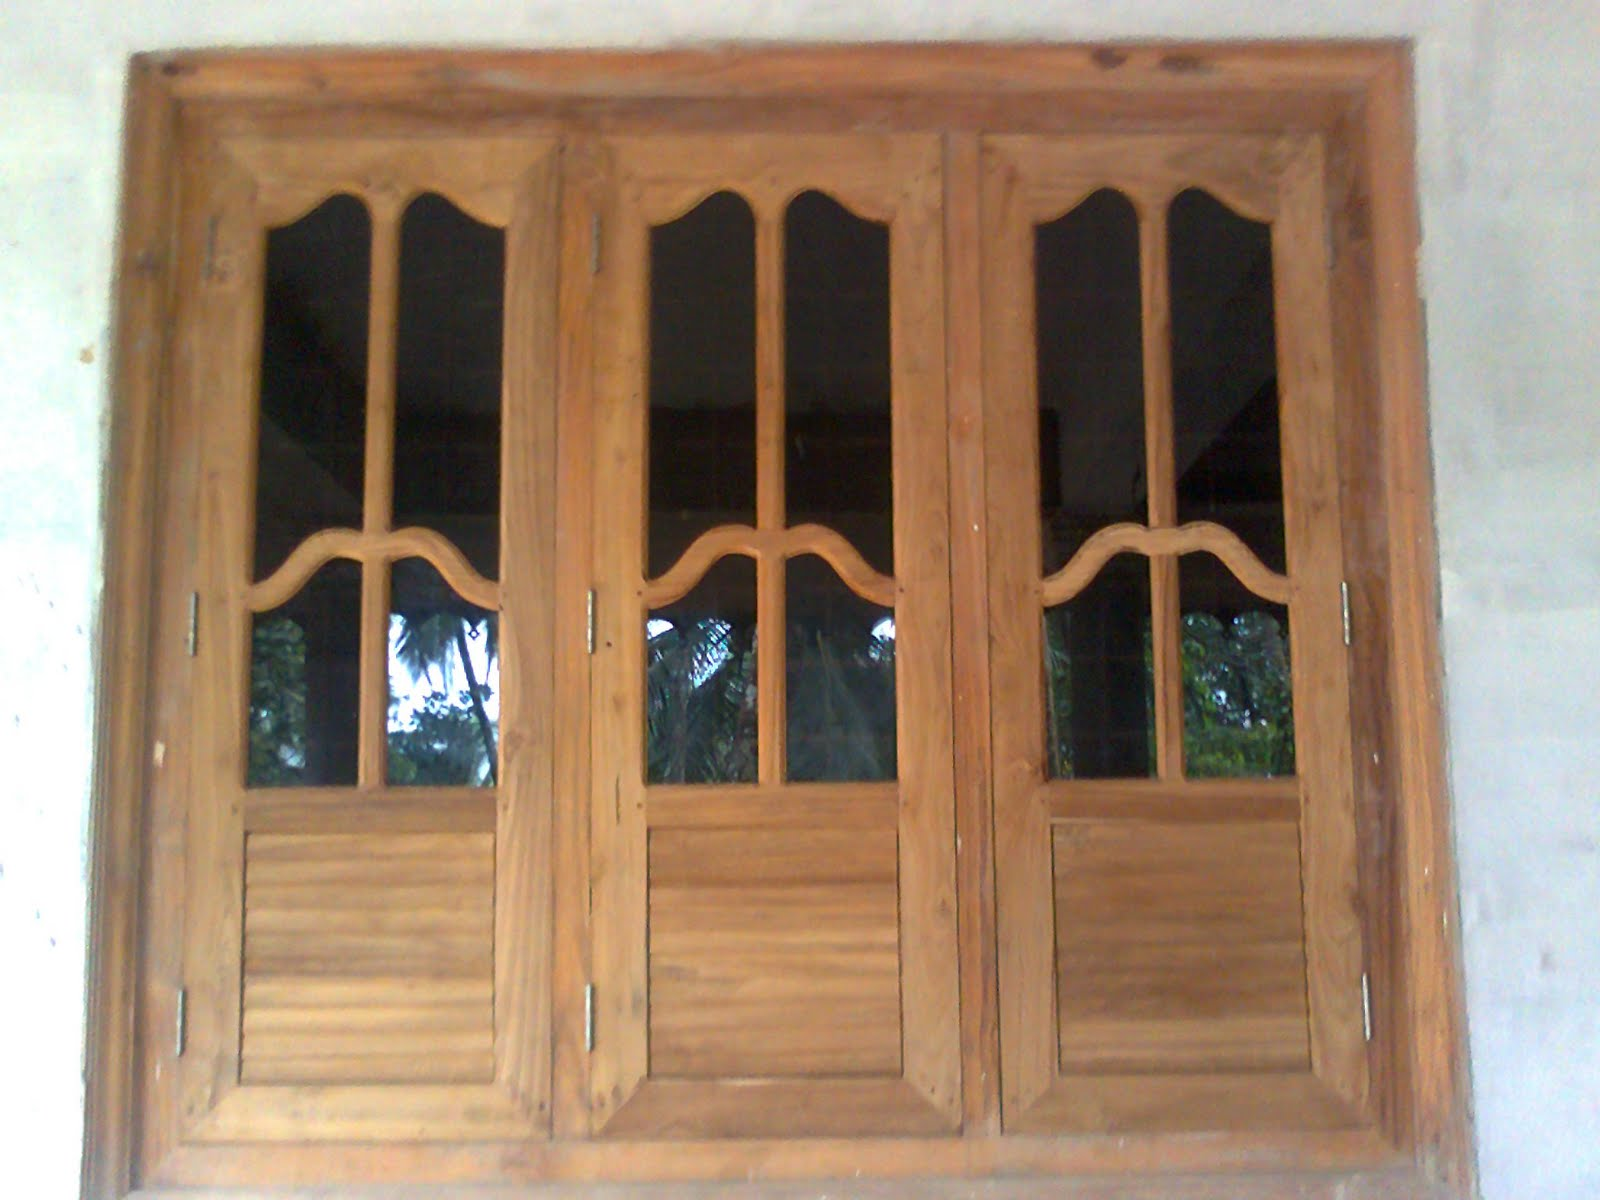 Bavas wood works wooden window doors simple designs for Wood doors with windows